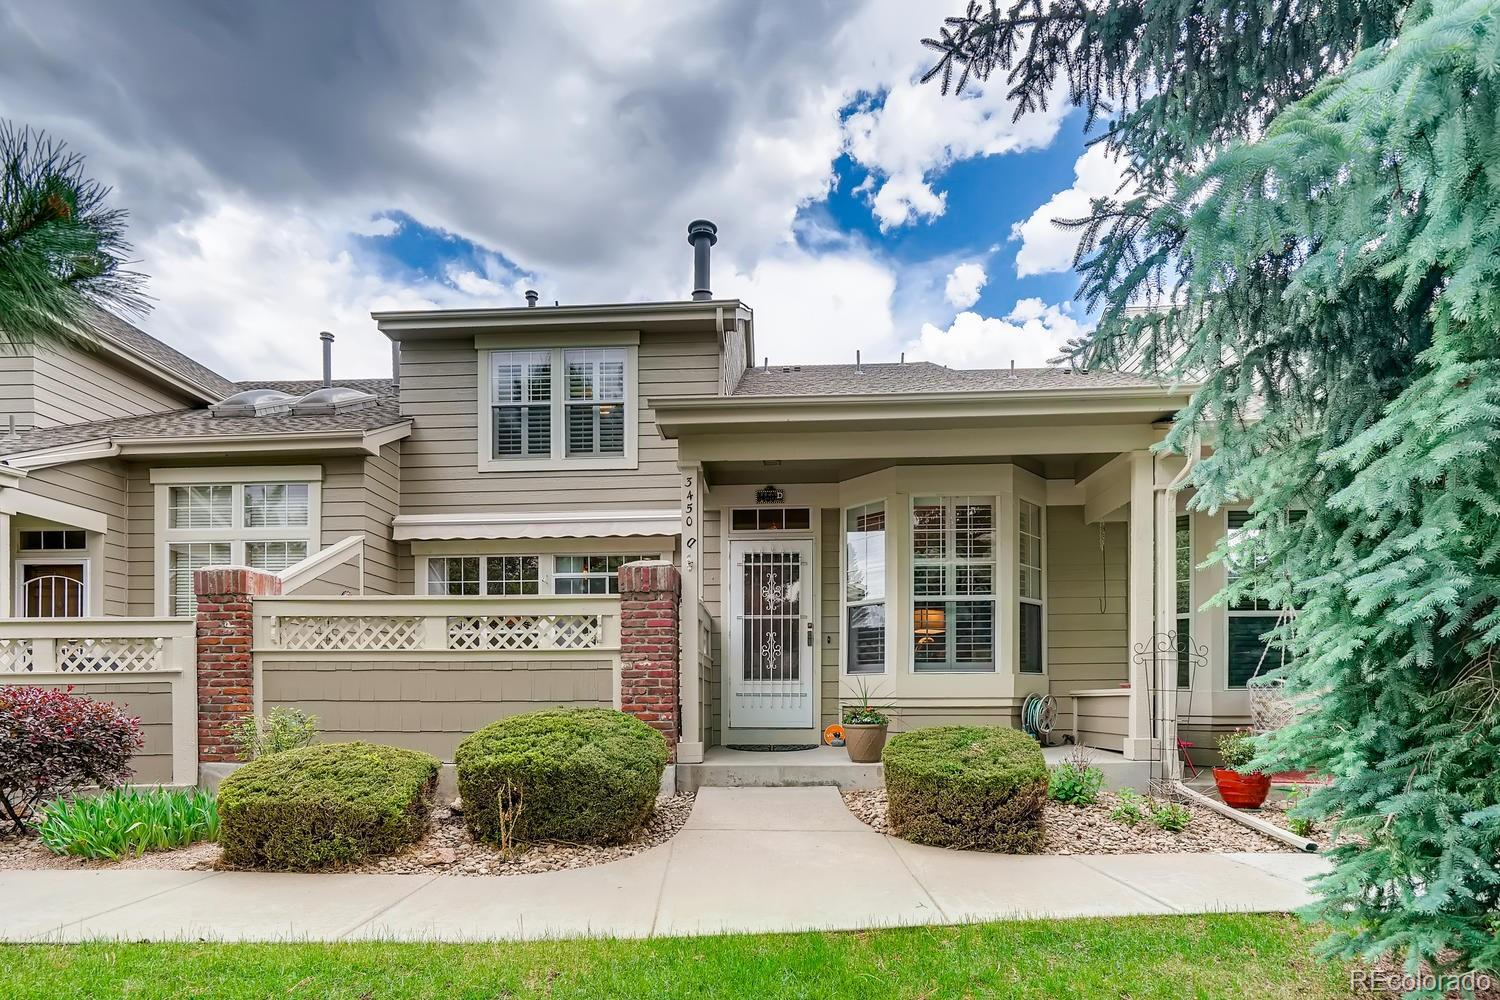 MLS# 7097344 - 1 - 3450 W 98th Drive #D, Westminster, CO 80031